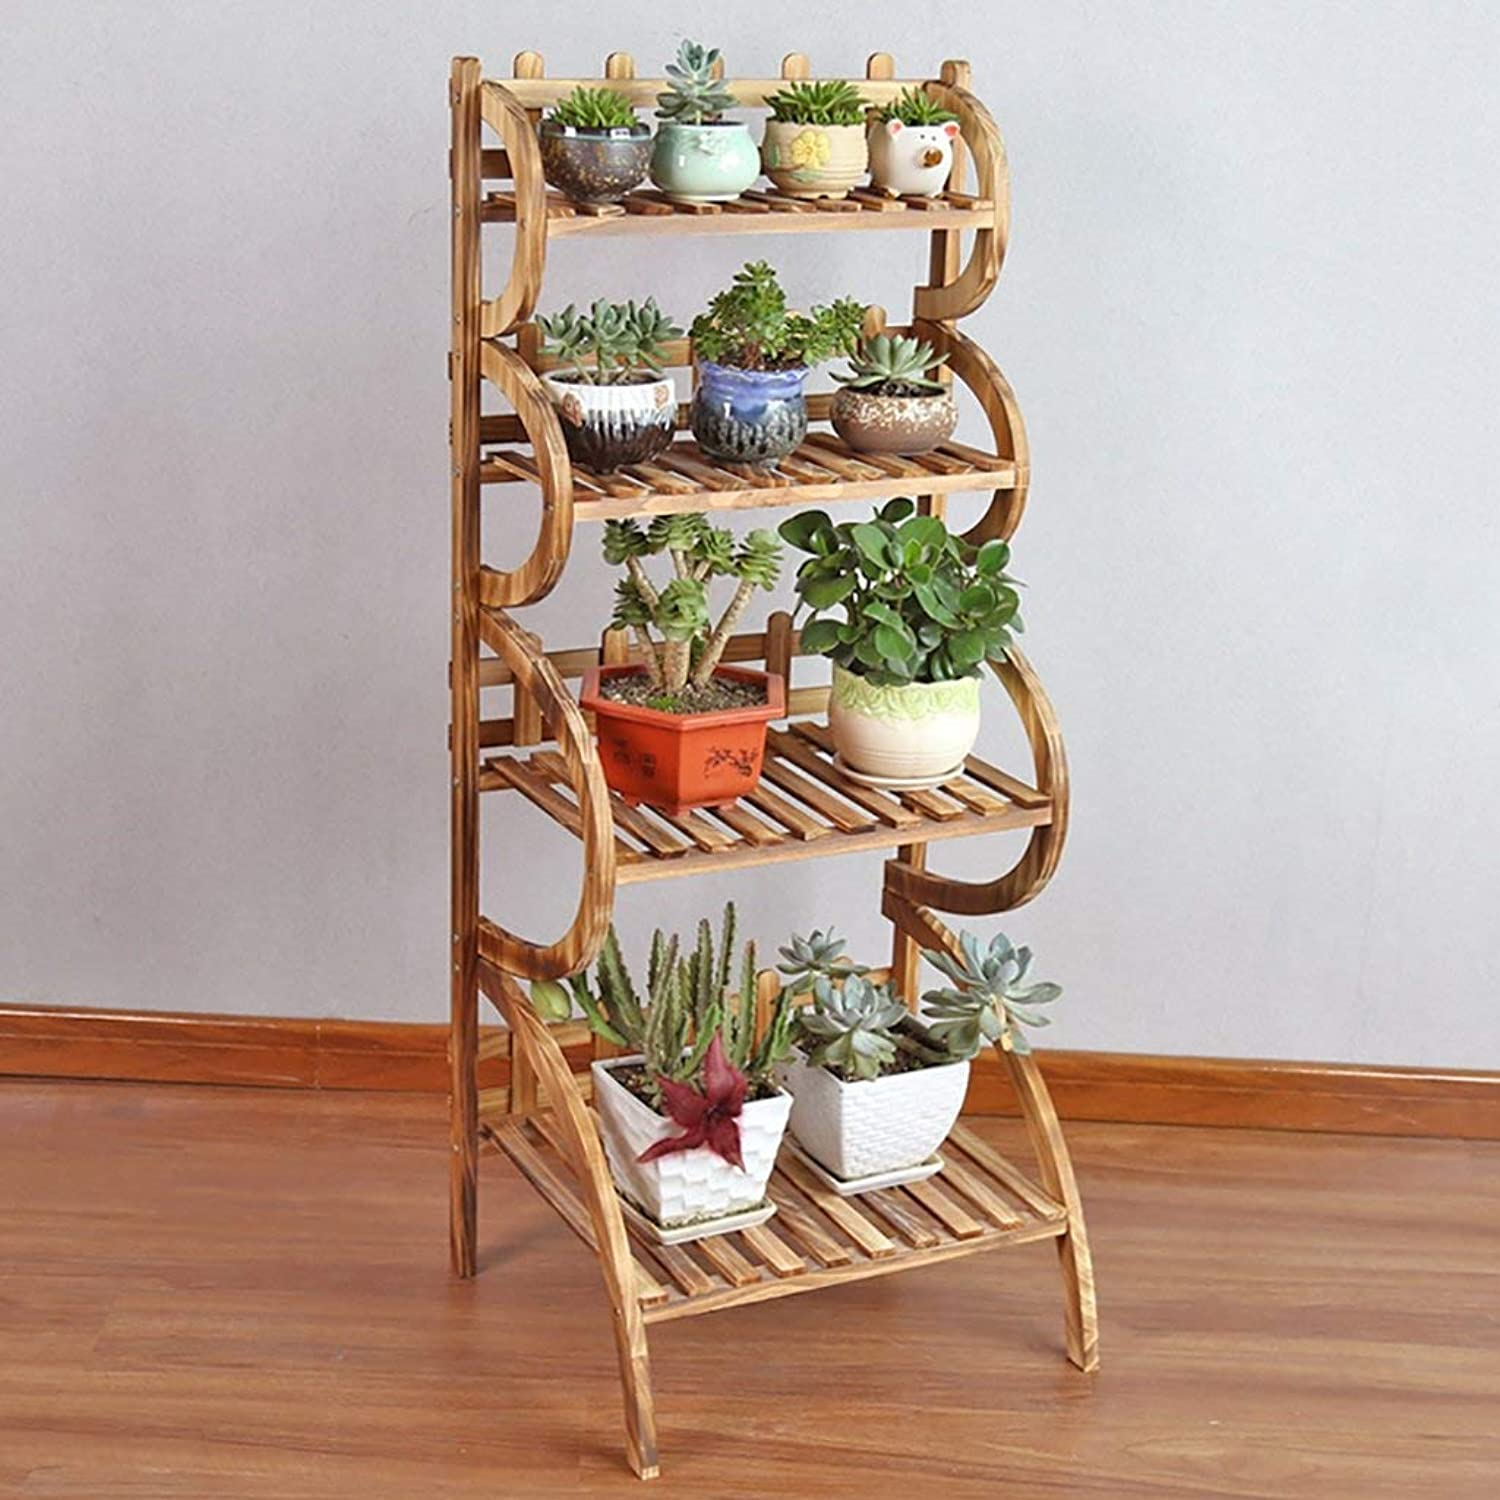 Shiyanghang Outdoor Indoor Display Plant Stand Simple and Fashionable Wood Flower Shelf, Garden Courtyard Balcony Living Room Plant Frame, Flower Plant Storage Rack (color   B, Size   50cm)